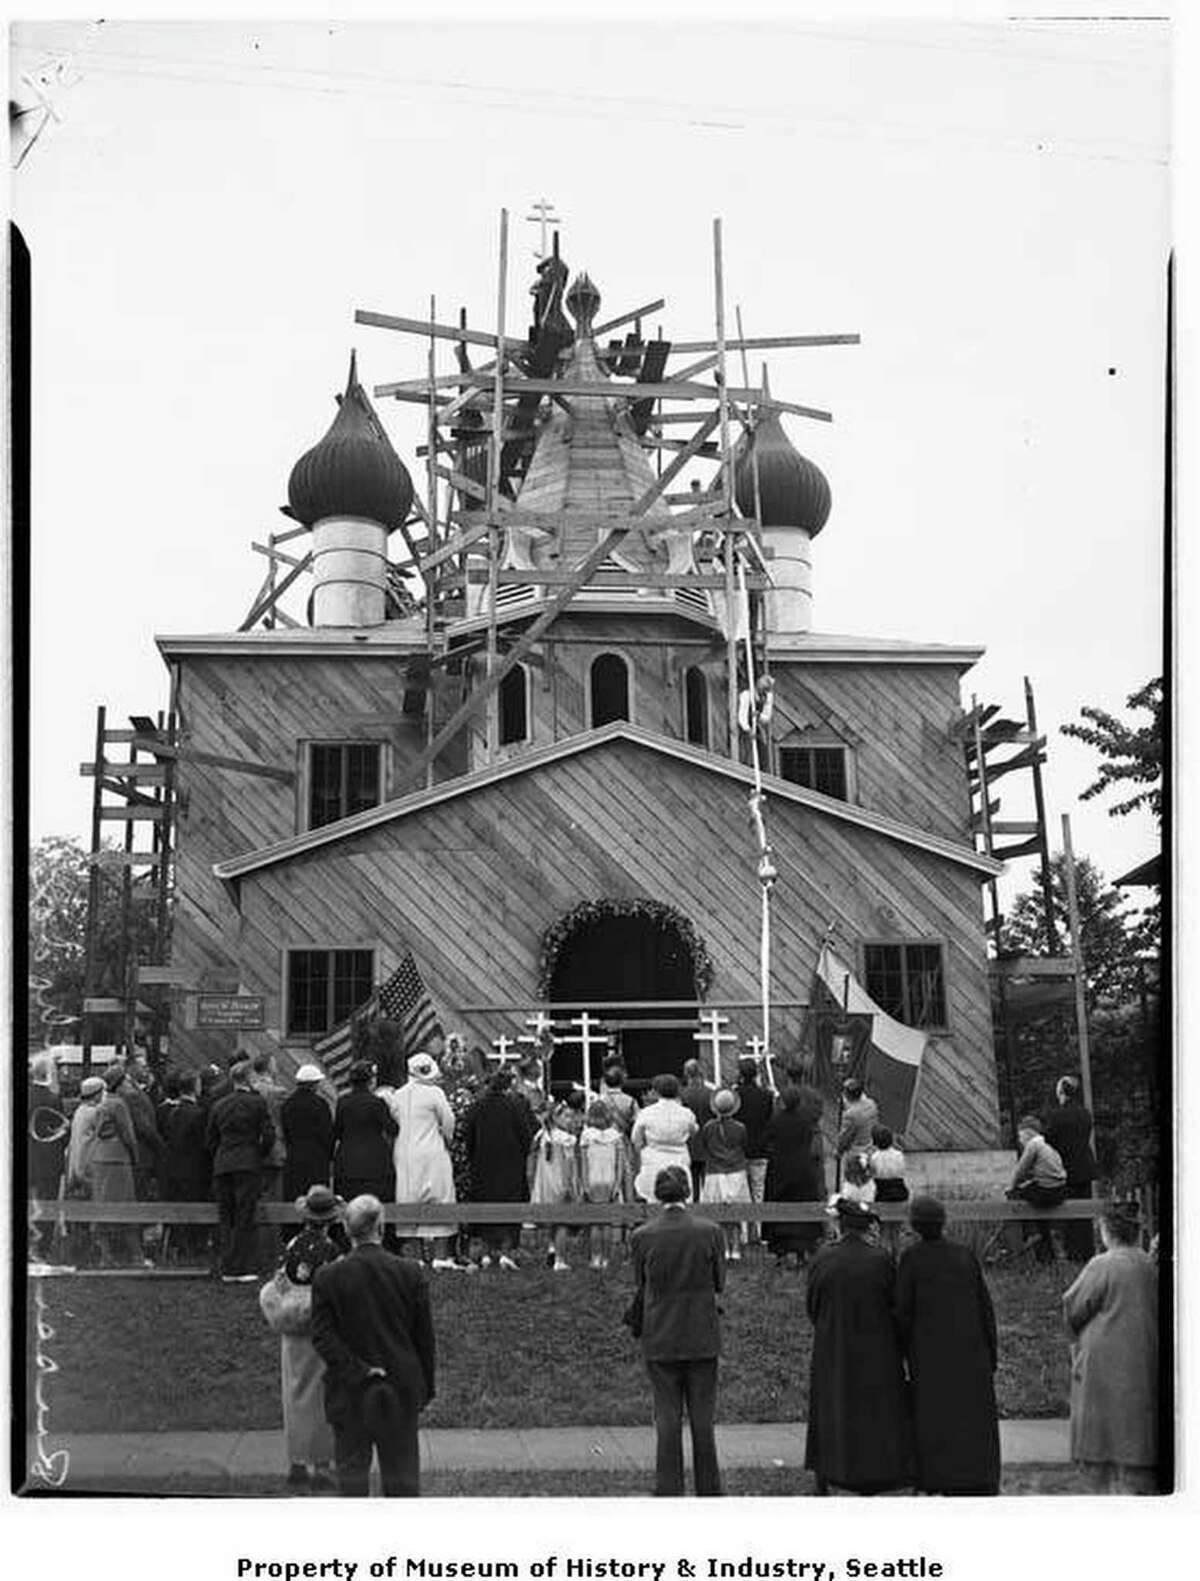 St. Nicholas Russian Orthodox church during construction, Seattle, 1937. St. Nicholas Russian Orthodox Church is located at 1714 13th Avenue East in Seattle's Capitol Hill neighborhood. It features the onion domes common to Russian church architecture. One of the oldest Russian Orthodox parishes in the U.S., it was founded in 1932 by Russian immigrants. The church building shown here was consecrated in December 1937 and dedicated to the 4th century Greek saint, Nikolaos of Myra. Here a crowd watches the cross being raised to the top of the building. (Courtesy of MOHAI)